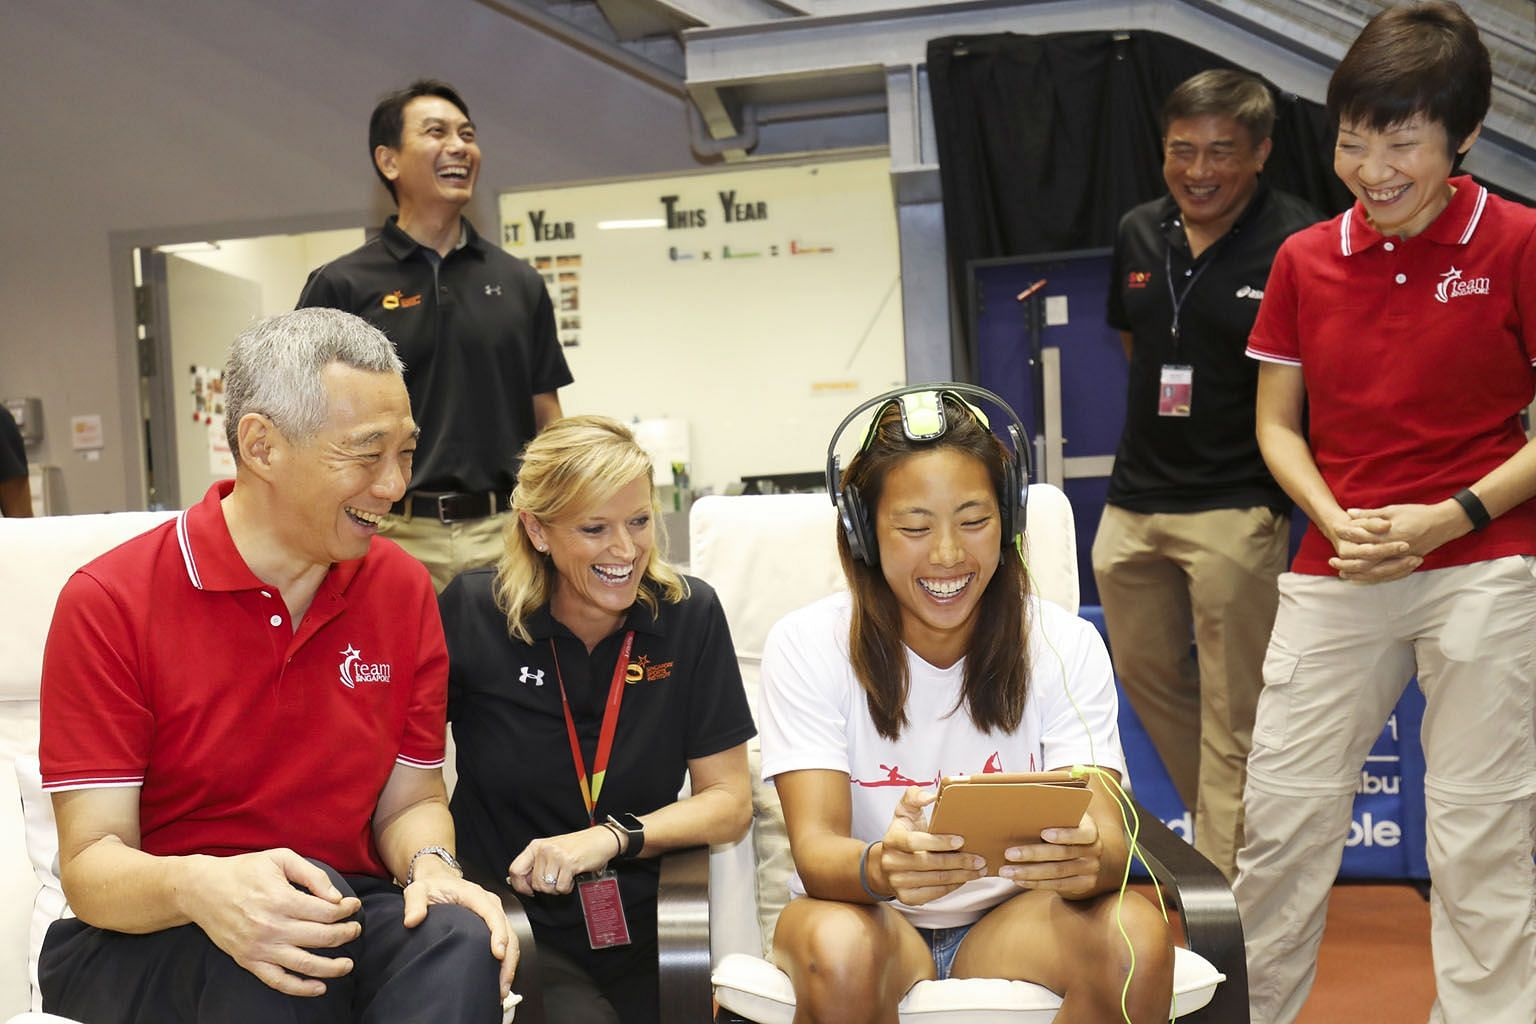 Prime Minister Lee Hsien Loong and SSI head of sport psychology Tracey Veivers watch as kayaker Sarah Chen shows how the iPad and Versus headset are used to help athletes with their mental conditioning. Behind them are Dr Frankie Tan (left), principa